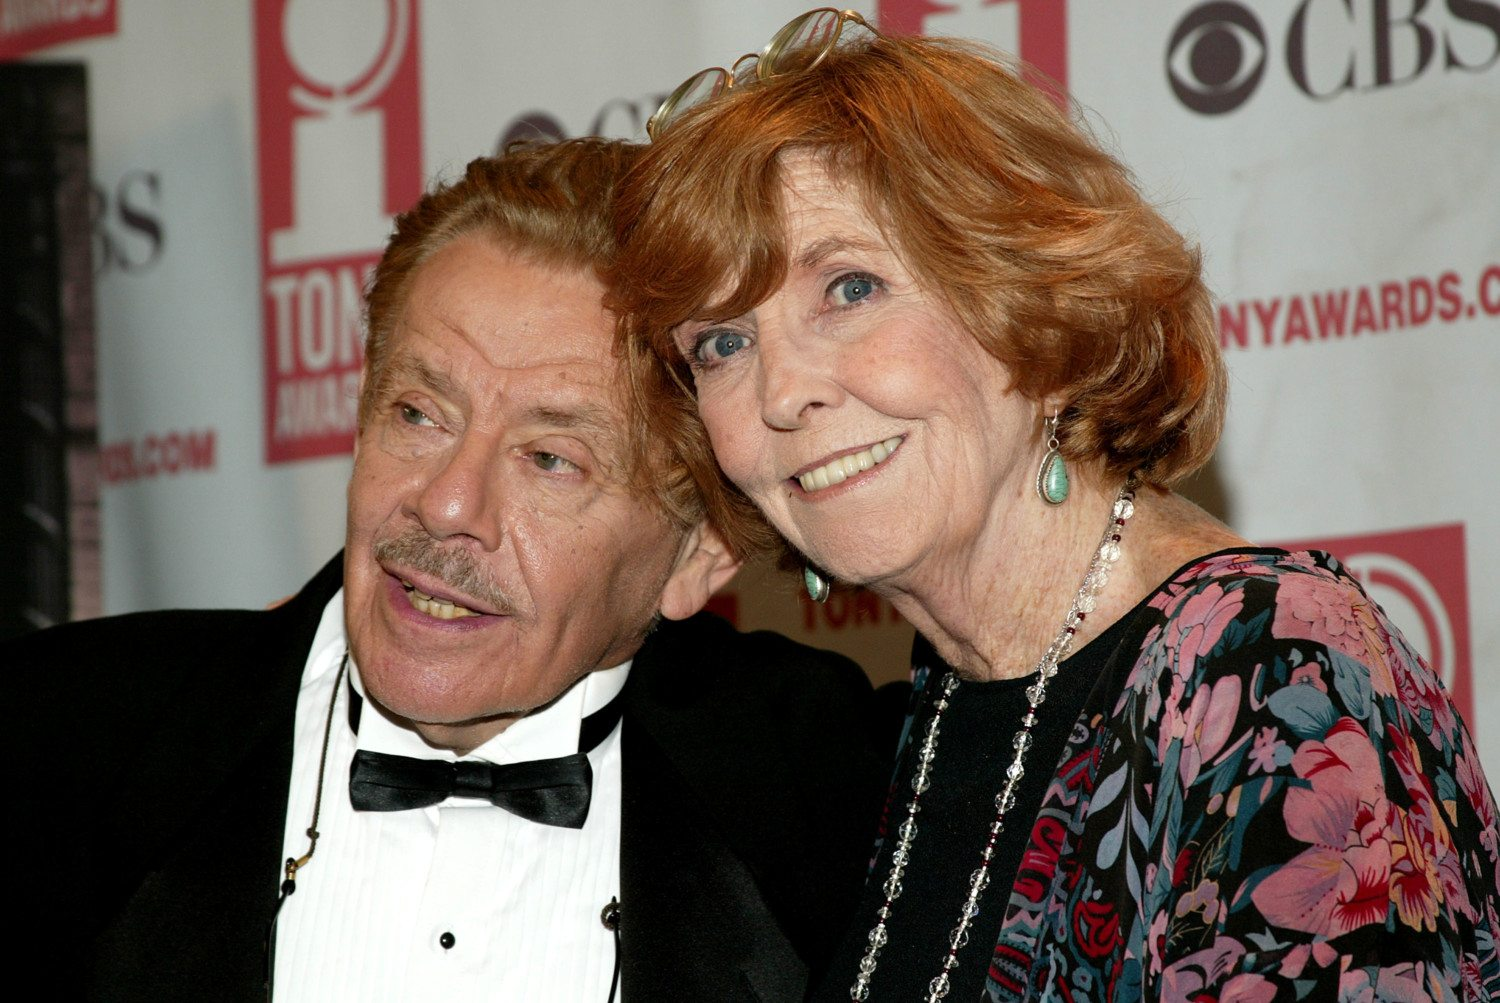 Jerry Stiller and Anne Meara attend the 58th Annual Tony Awards on June 6, 2004, in New York City. | Source: Getty Images.